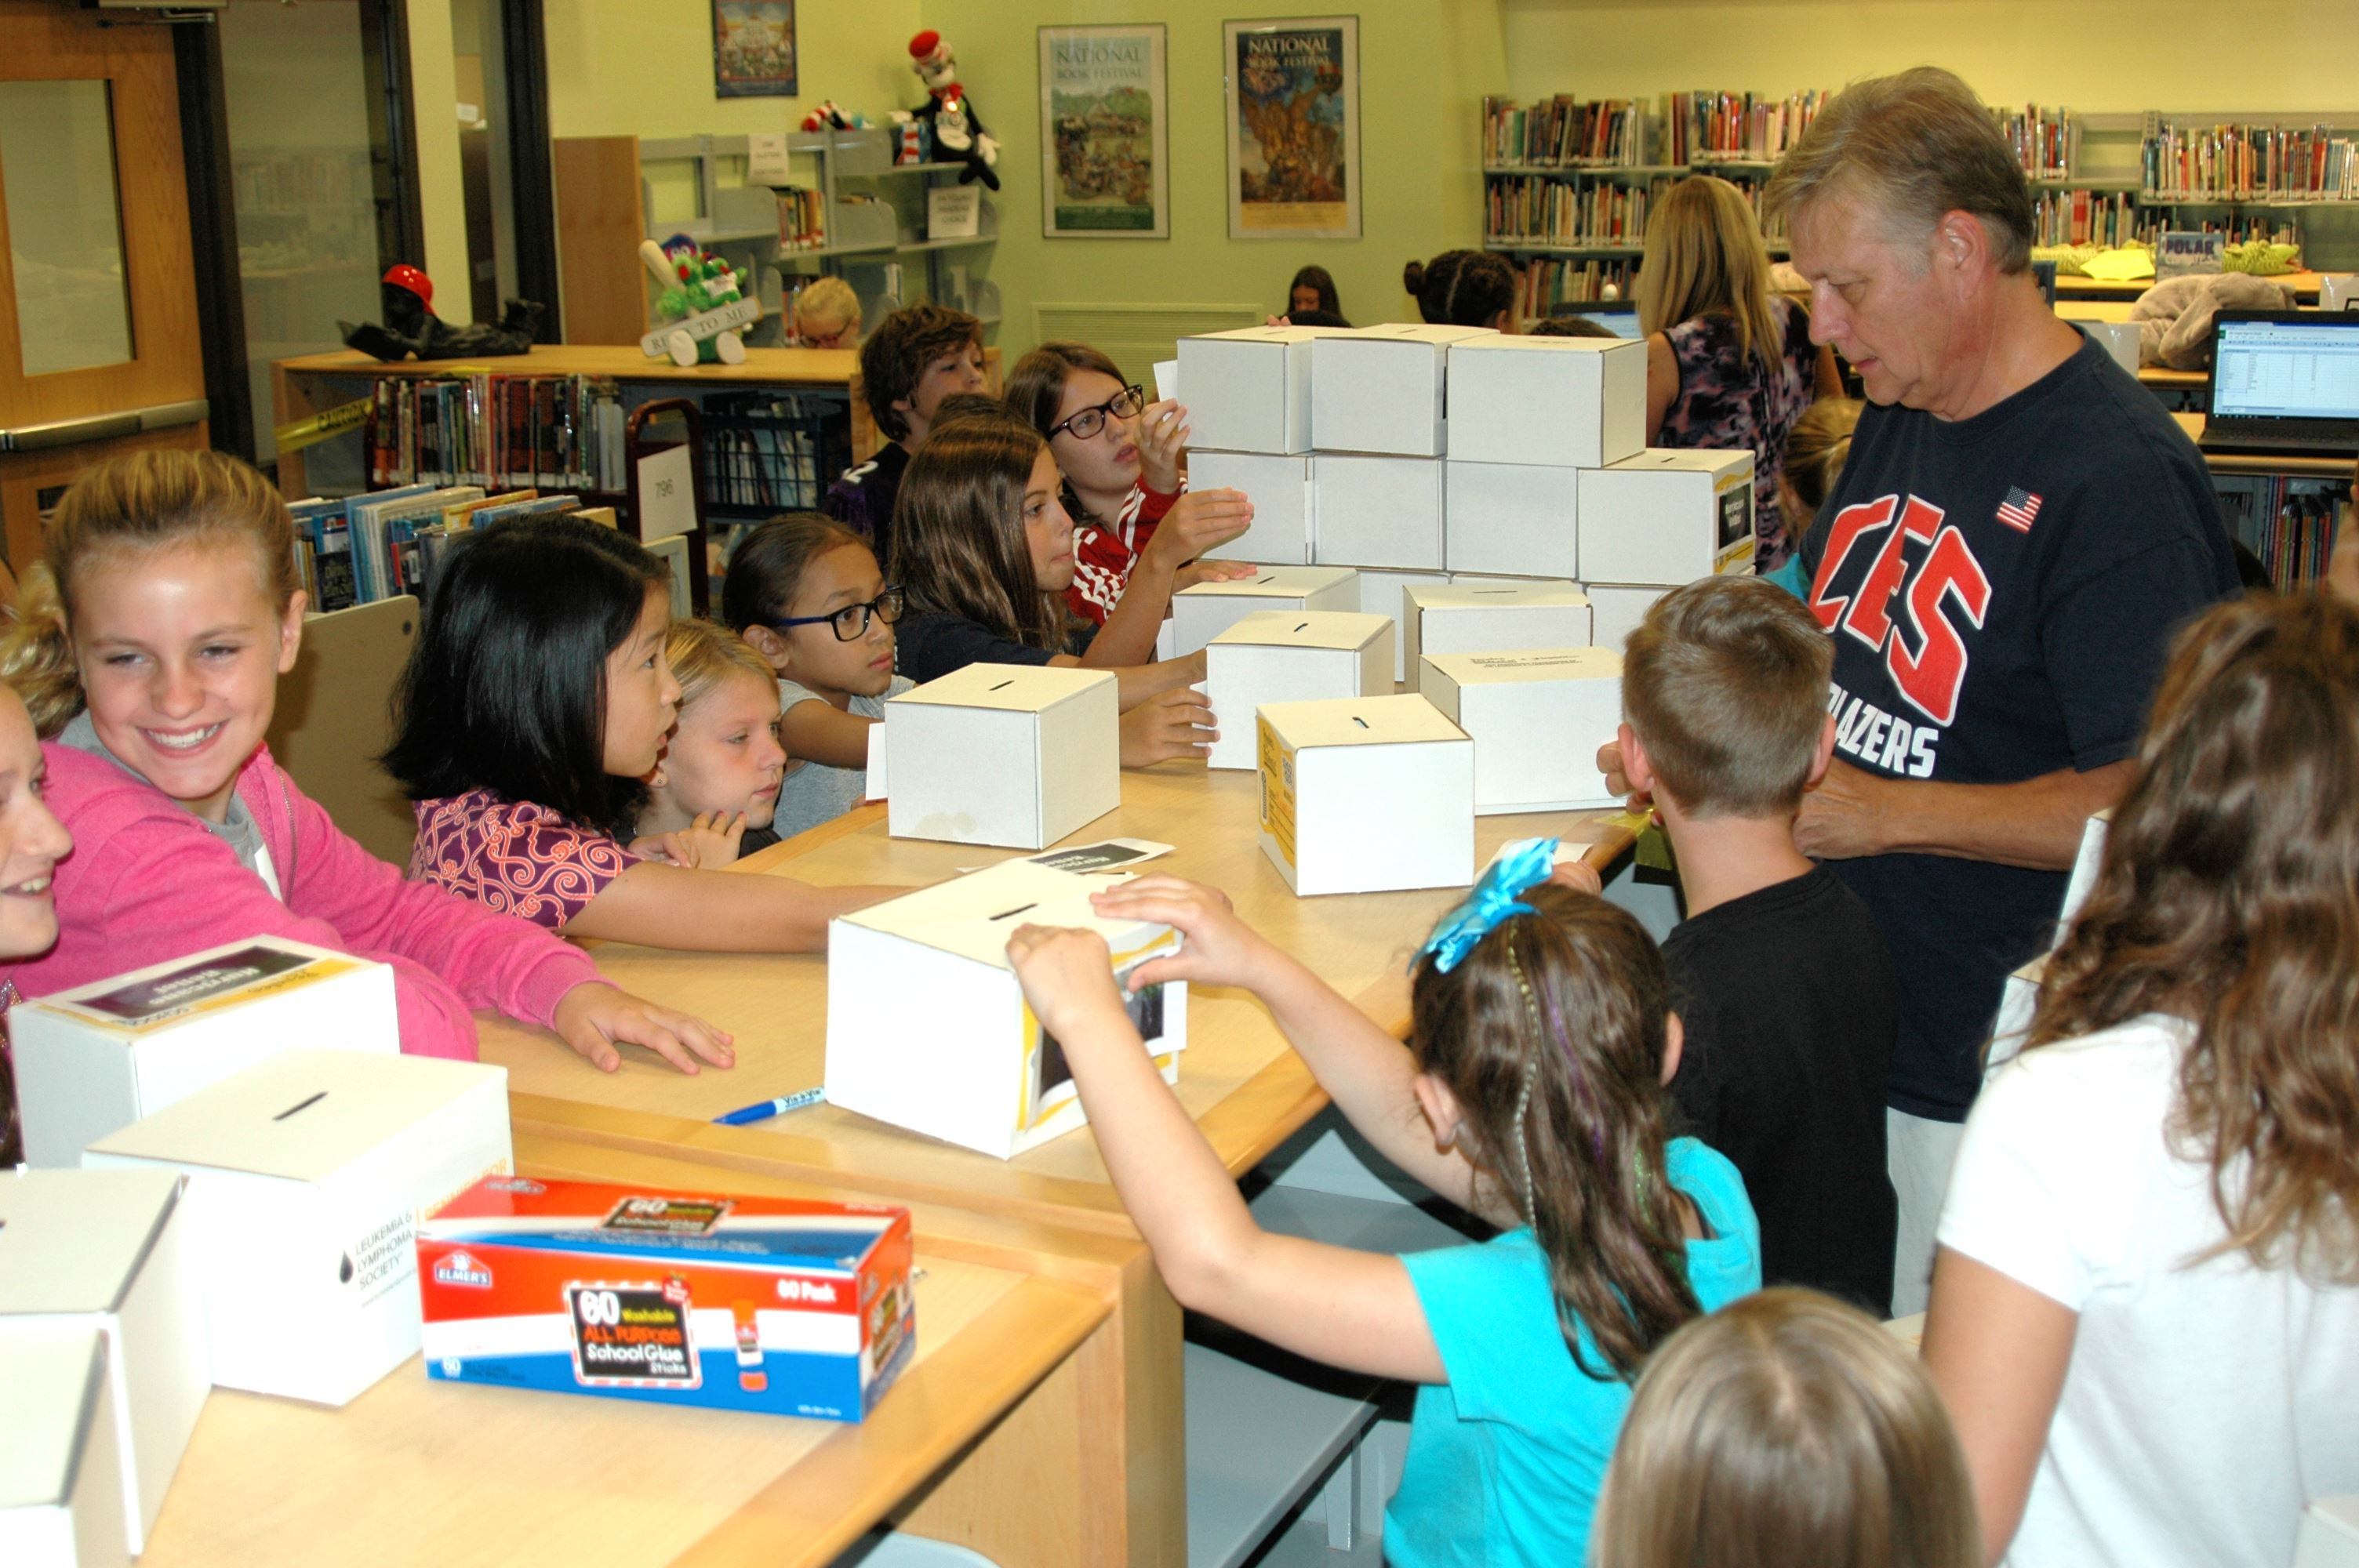 Several students working with Teacher Ken Grimes to fold cardboard donation boxes.